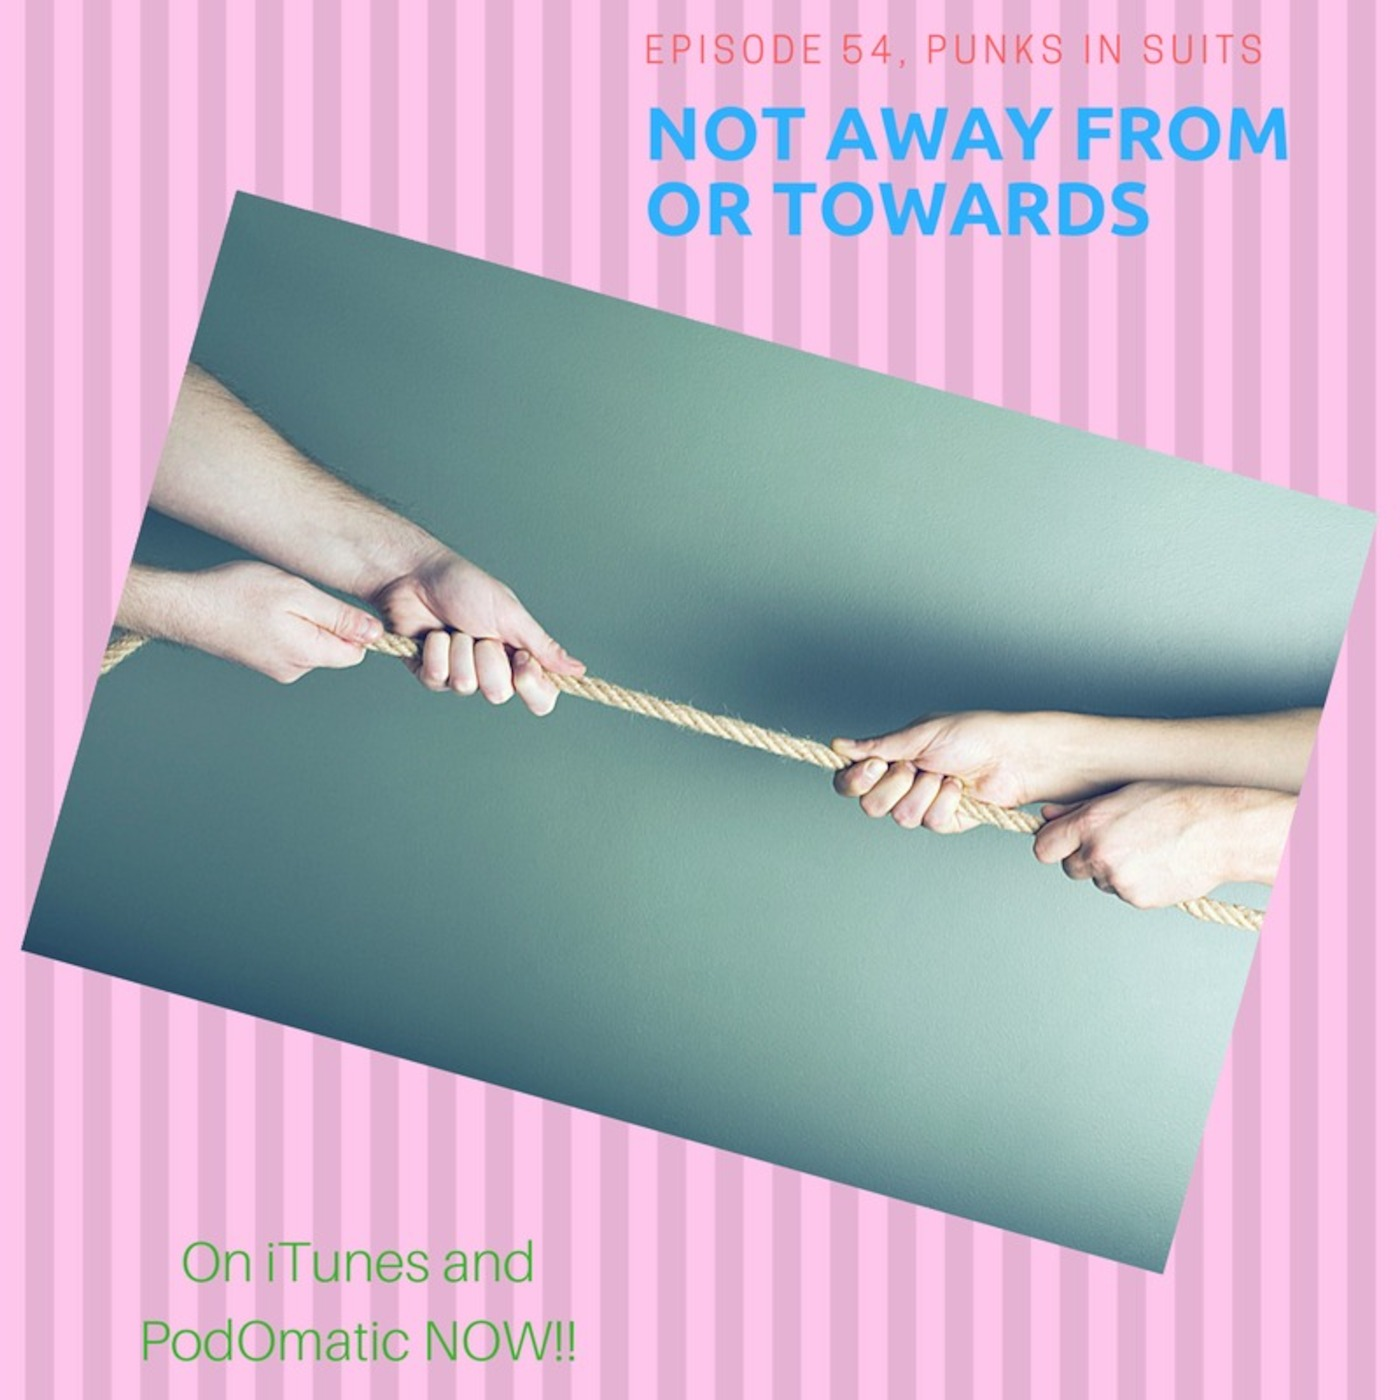 Episode 54: Not Away From or Towards...